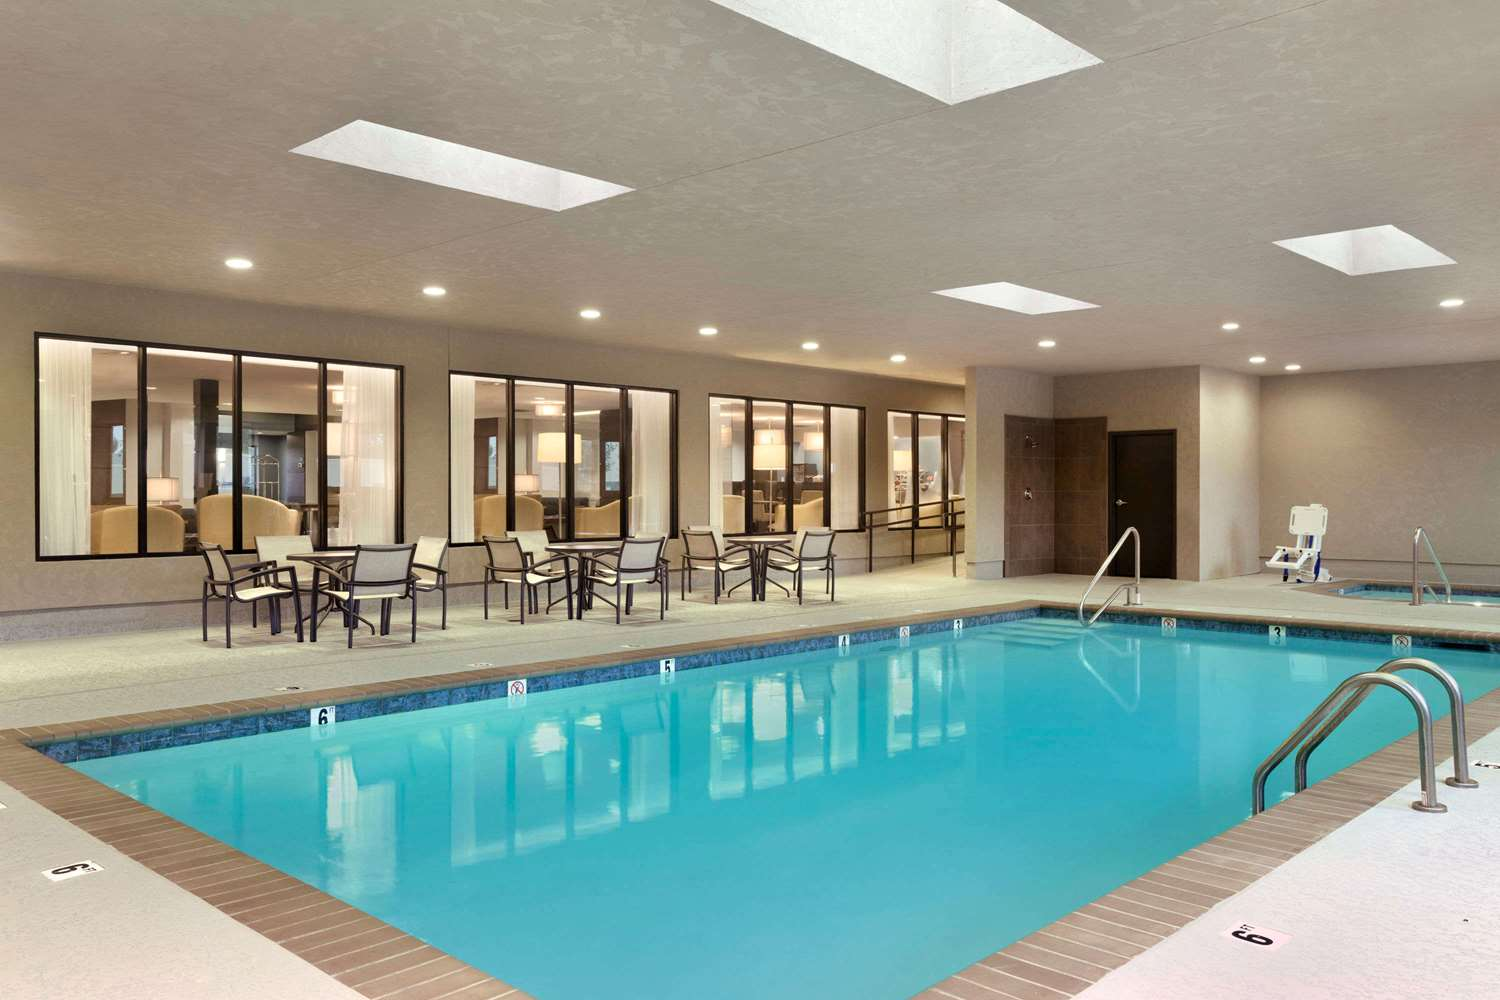 Pool - Wingate by Wyndham Hotel East Slidell